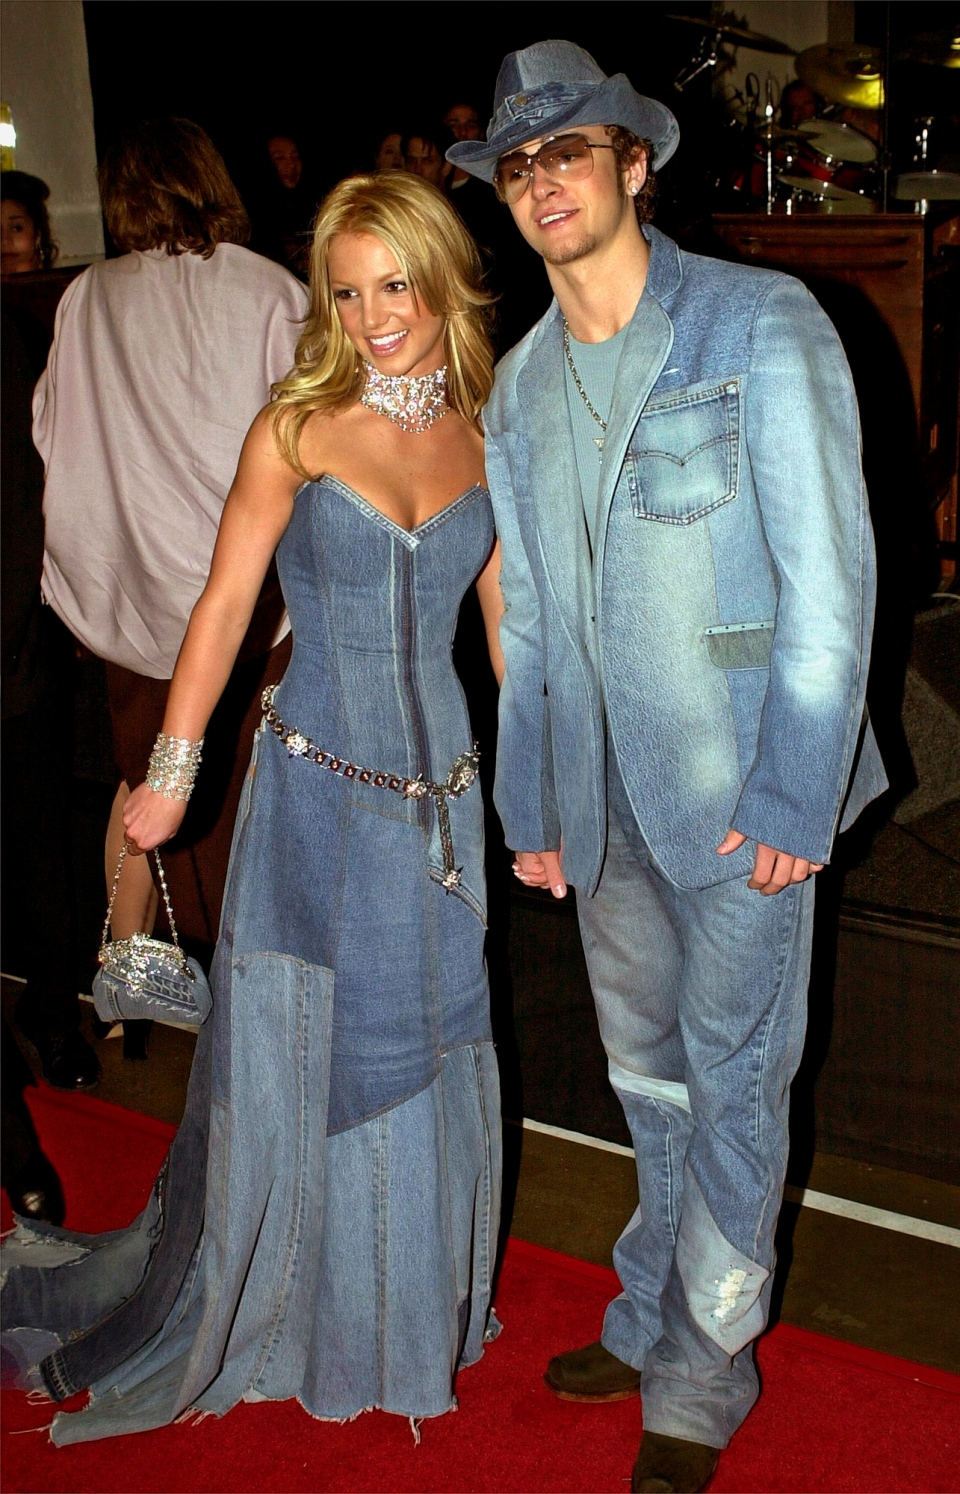 In this Jan. 8, 2001 file photo, Britney Spears and Justin Timberlake arrive at the 28th Annual American Music Awards in Los Angeles. (AP / Mark J. Terrill)